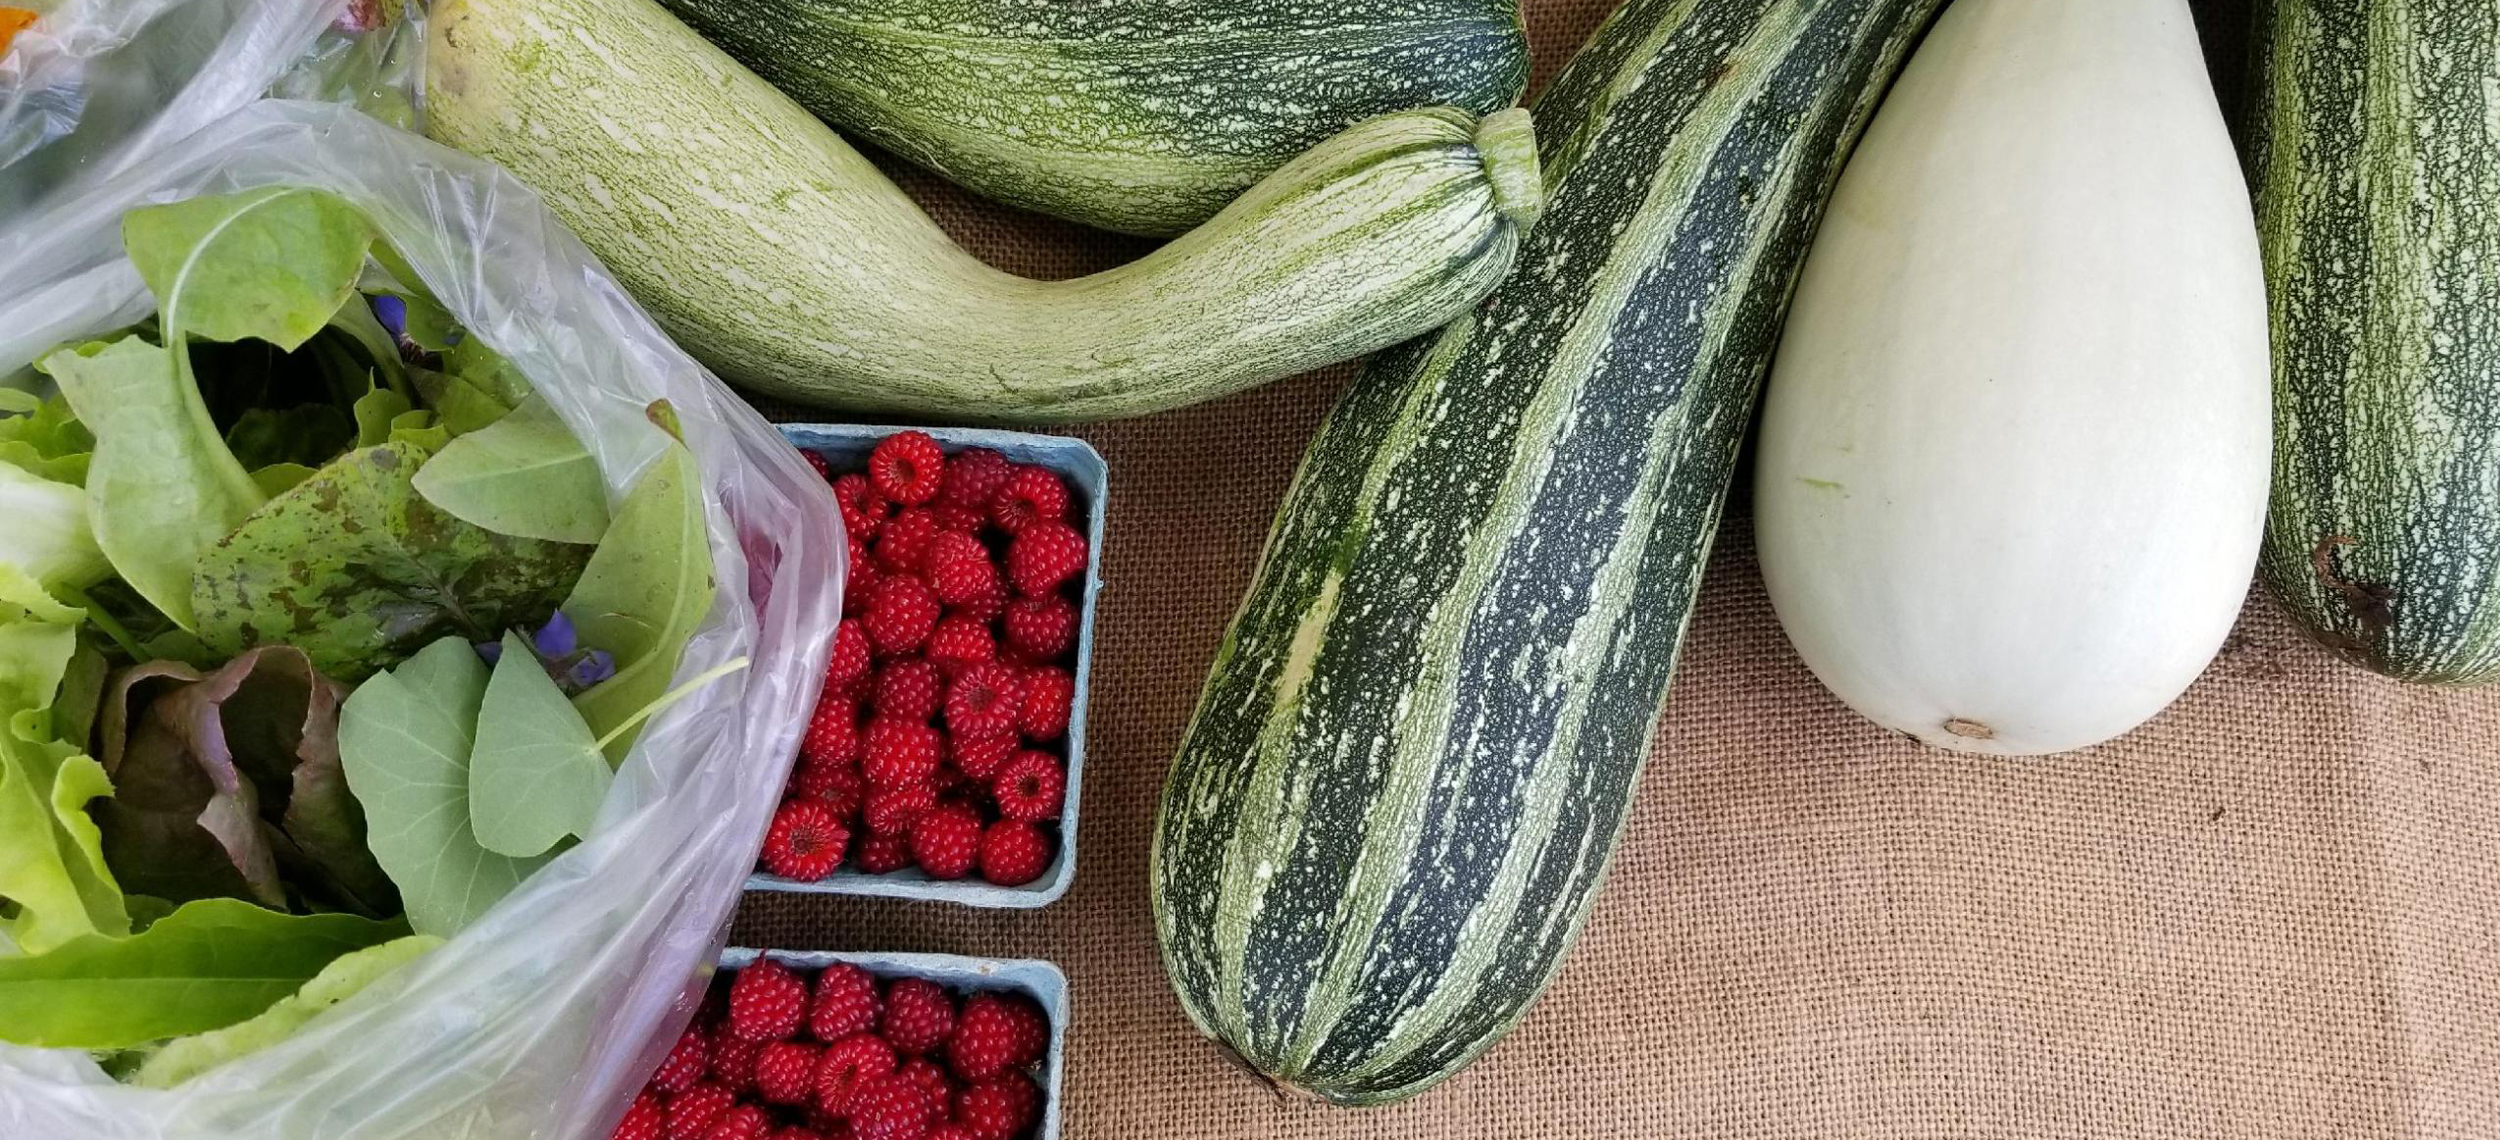 Celebrate the variety and abundance of agricultural products   grown on the Delmarva Peninsula